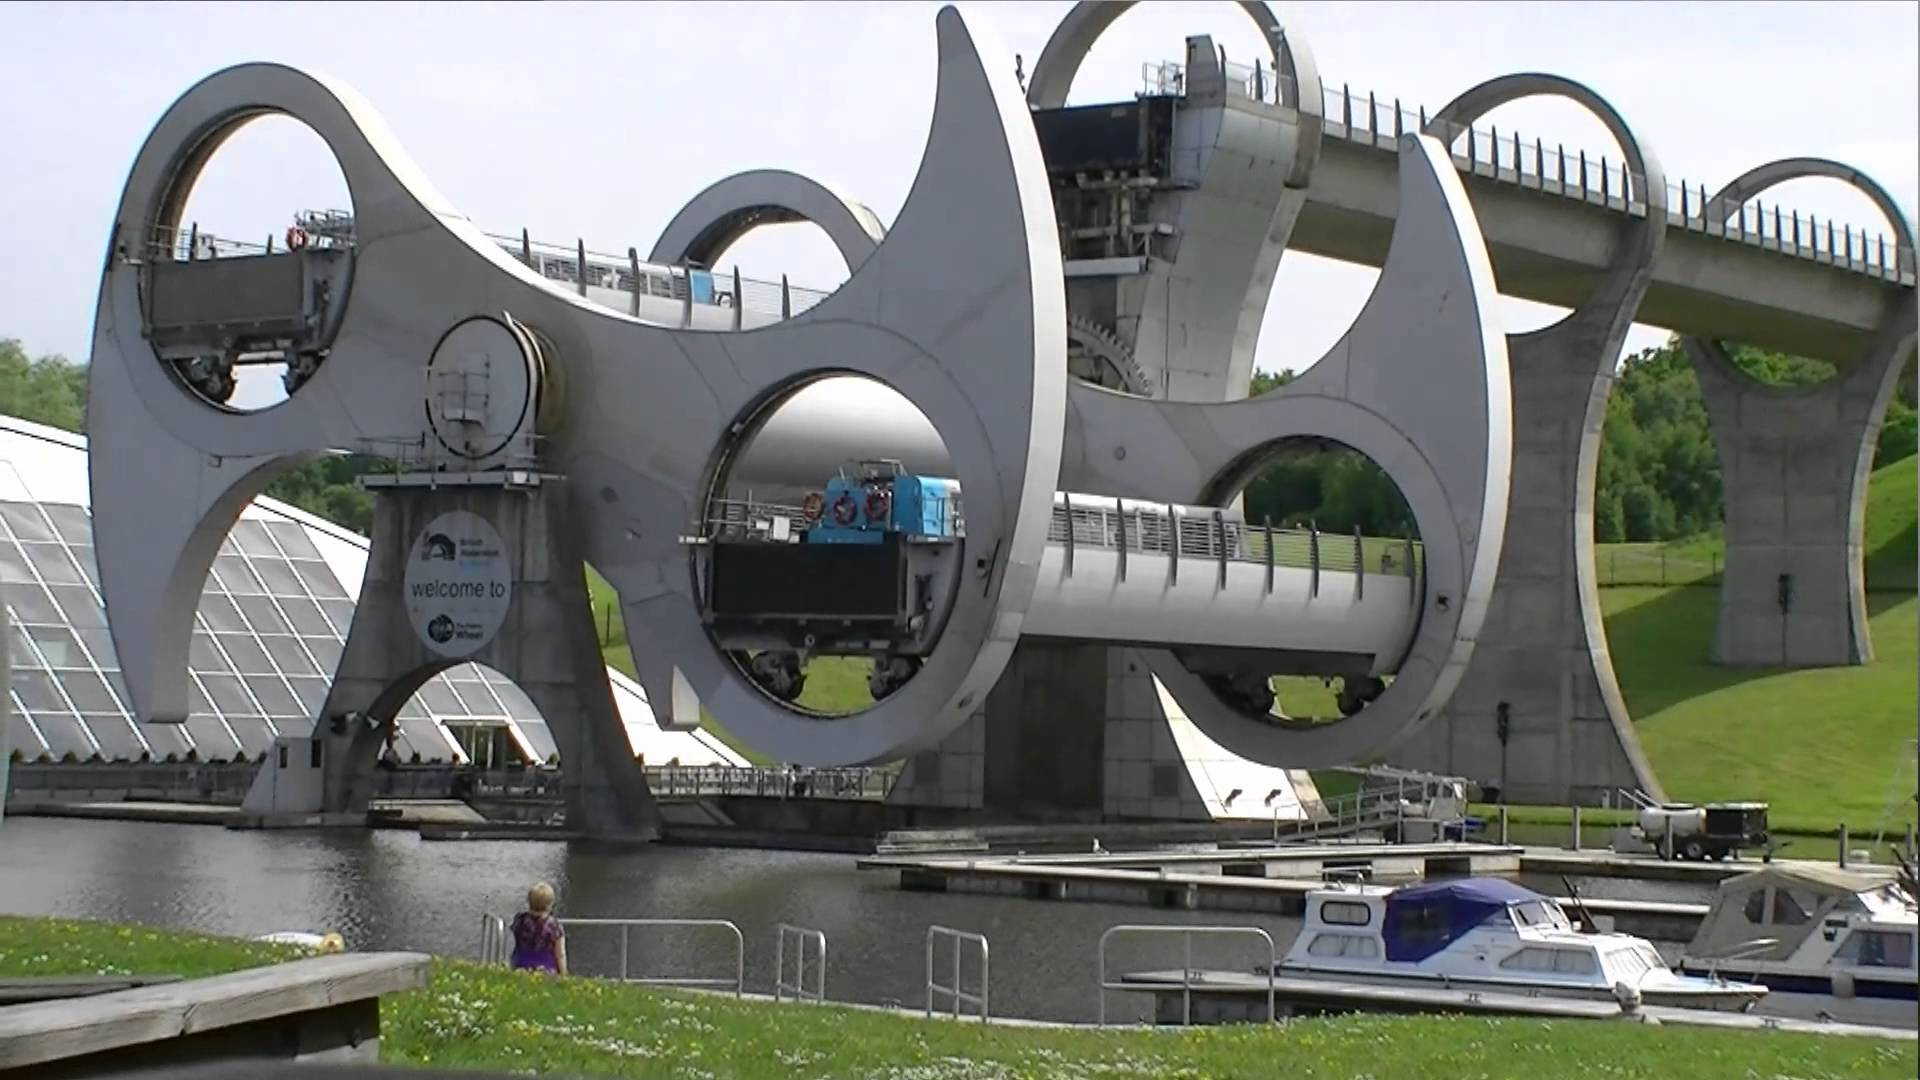 Falkirk Wheel Central Scotland, Falkirk Wheel - YouTube